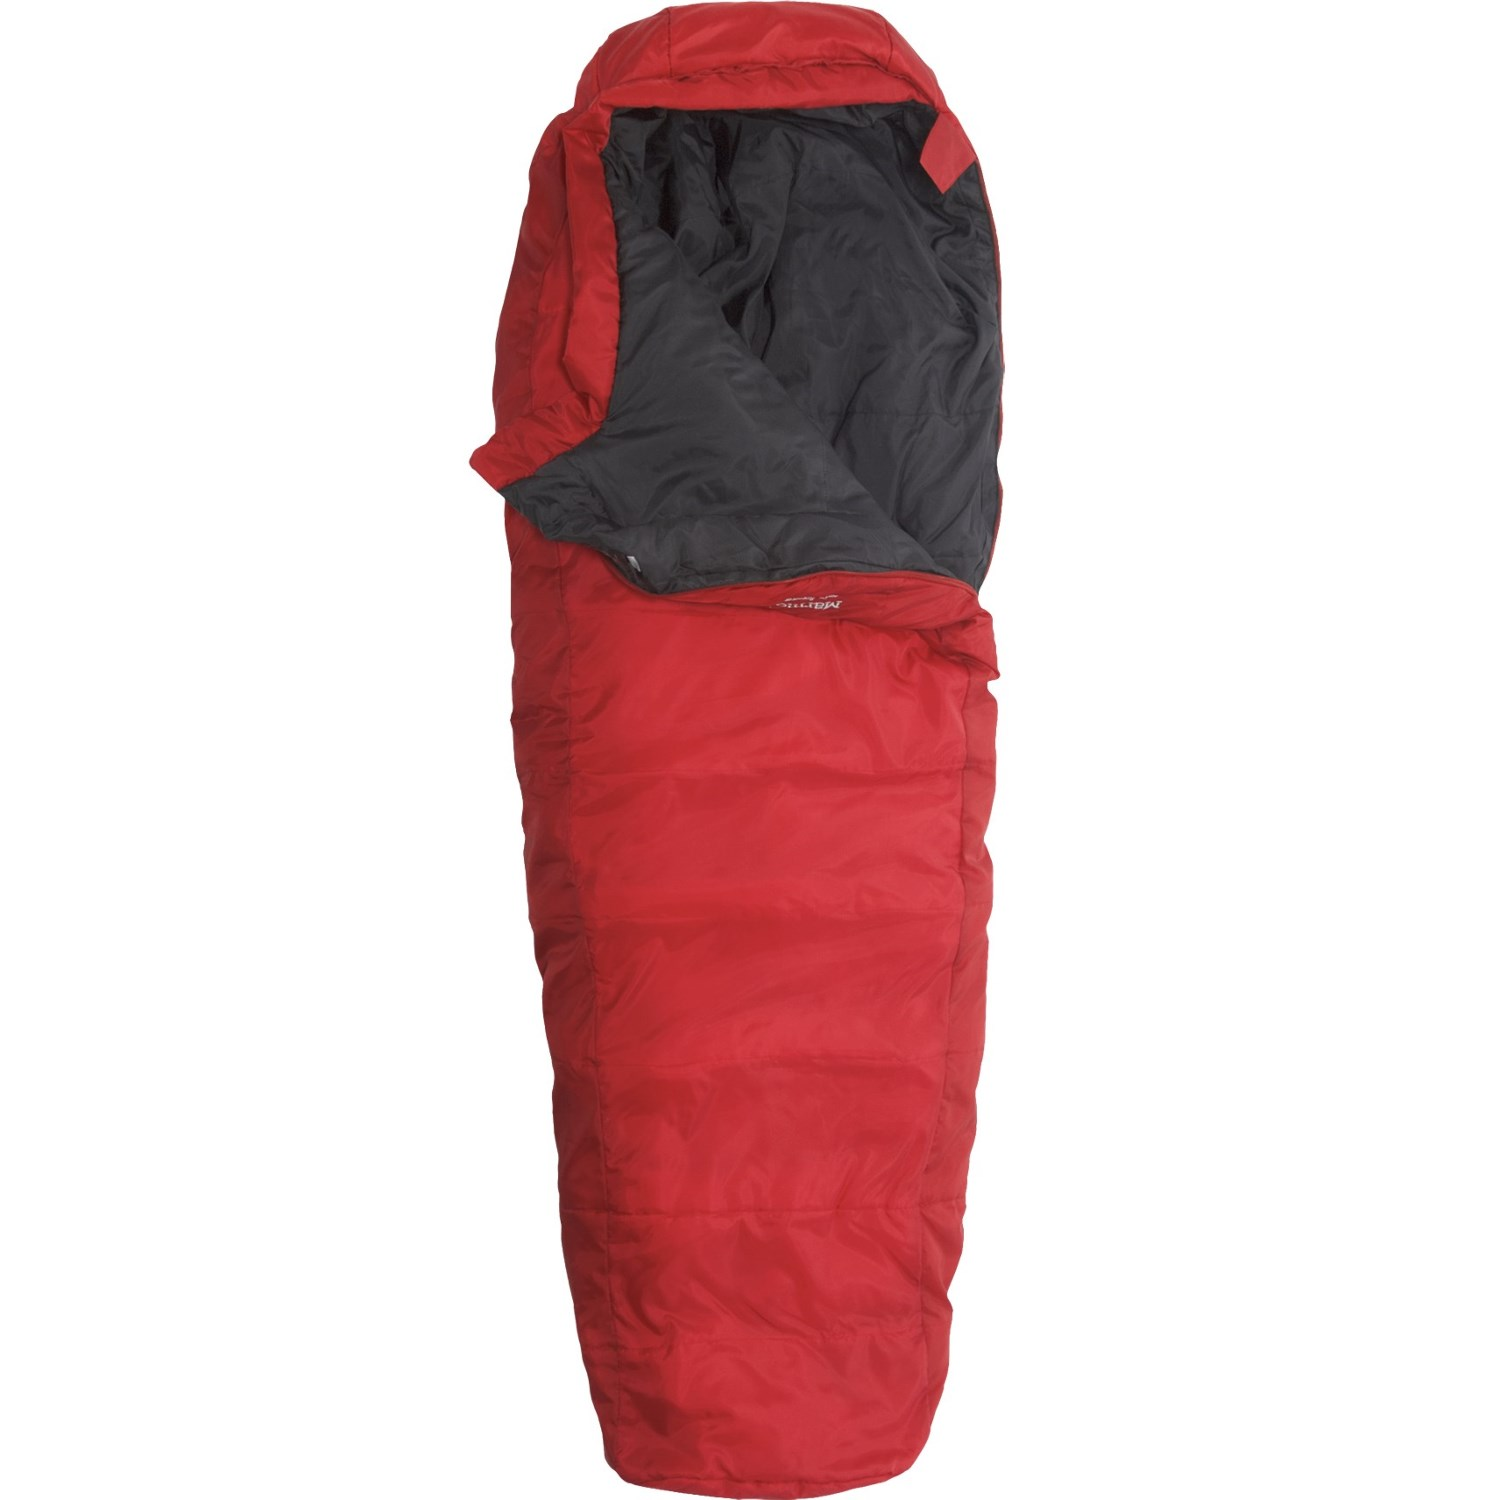 Marmot Jr. 30°F Sorcerer Jr. Sleeping Bag (For Kids)